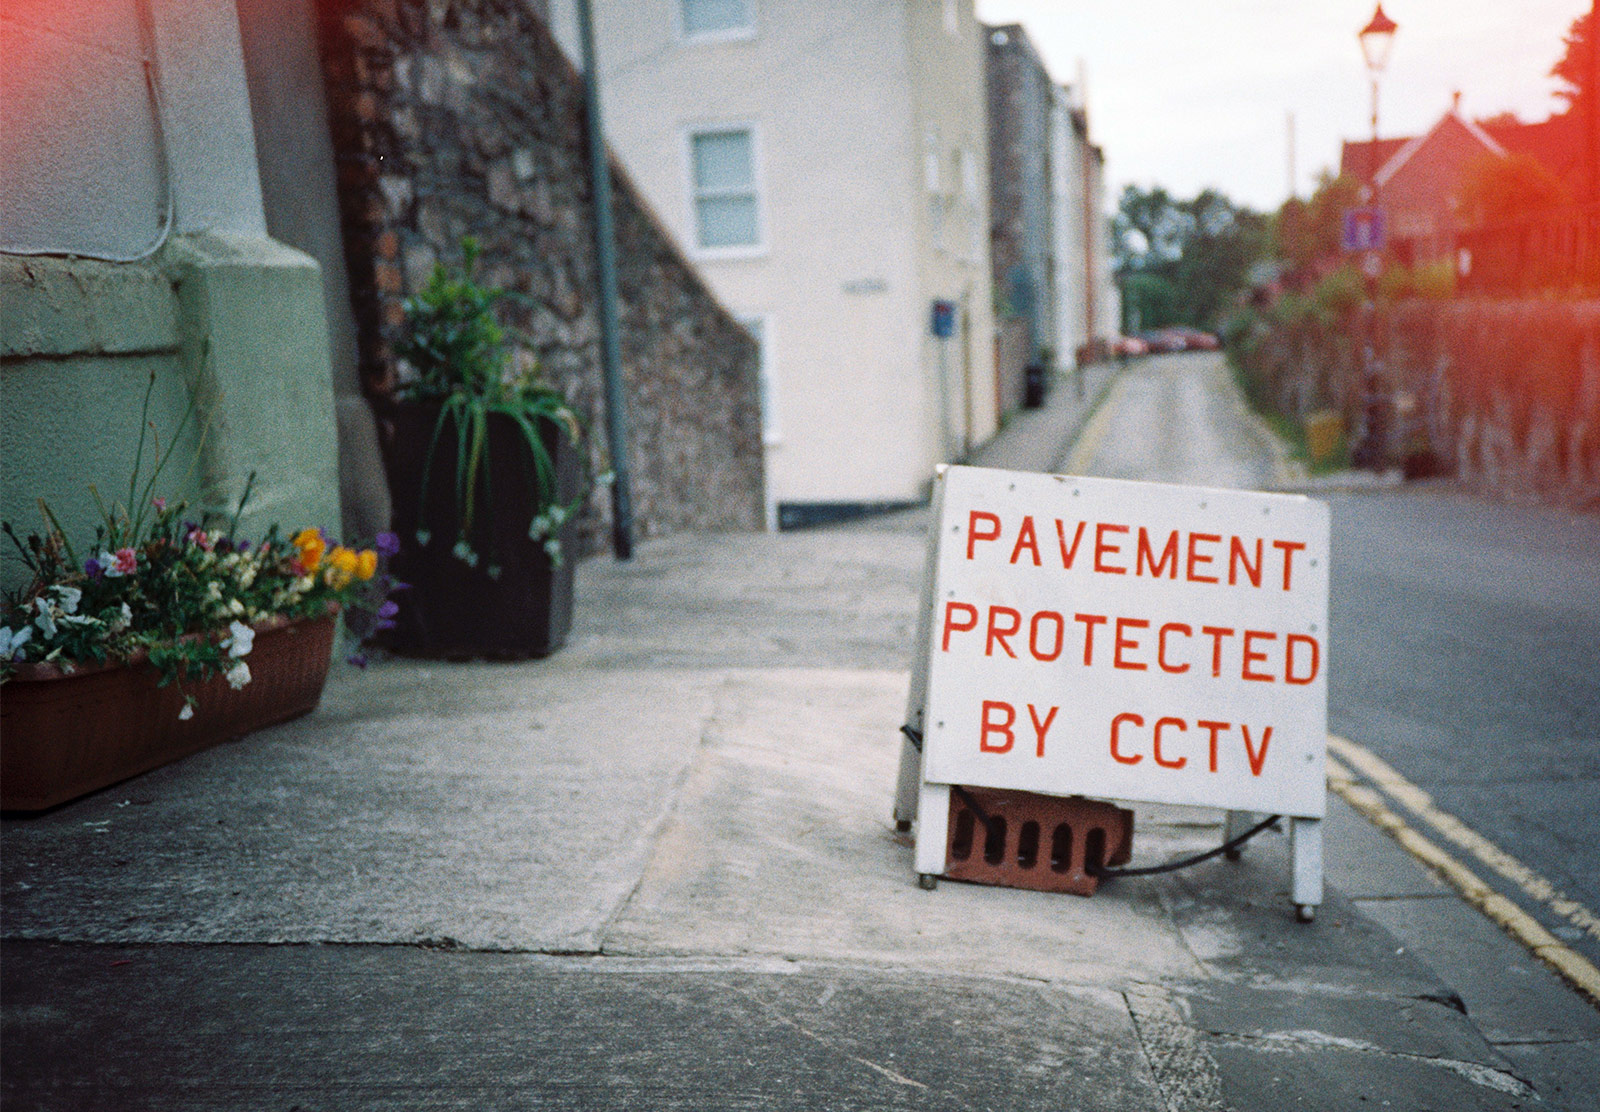 Pavement protected by CCTV sign